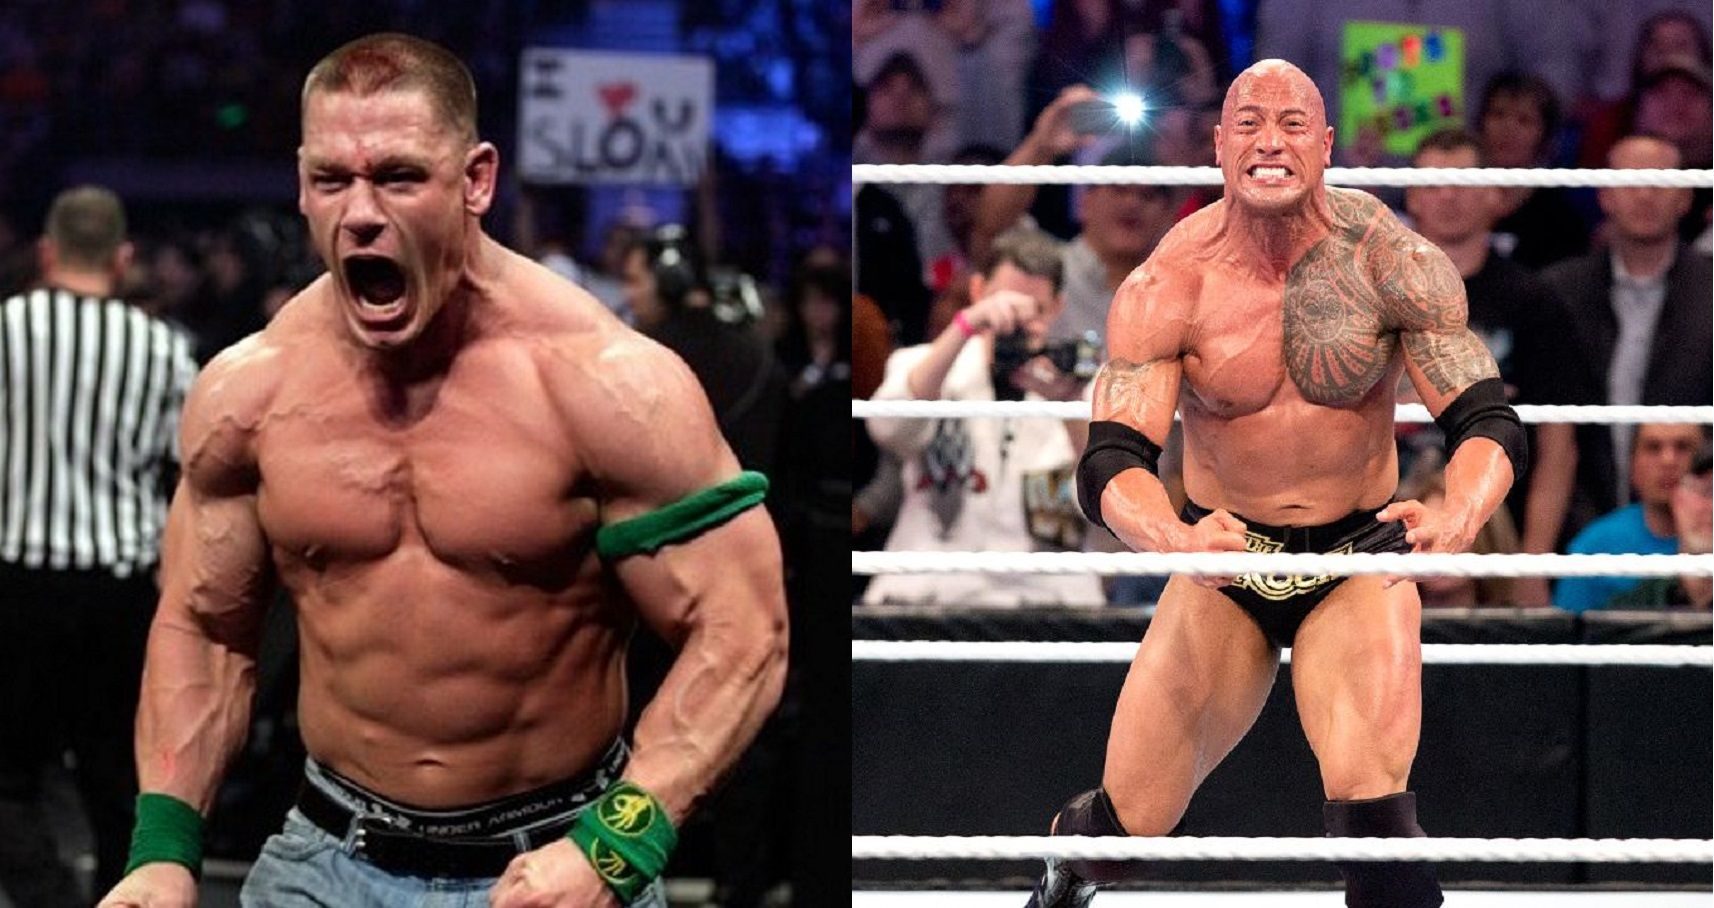 The 15 Most Jacked Wrestlers In WWE History